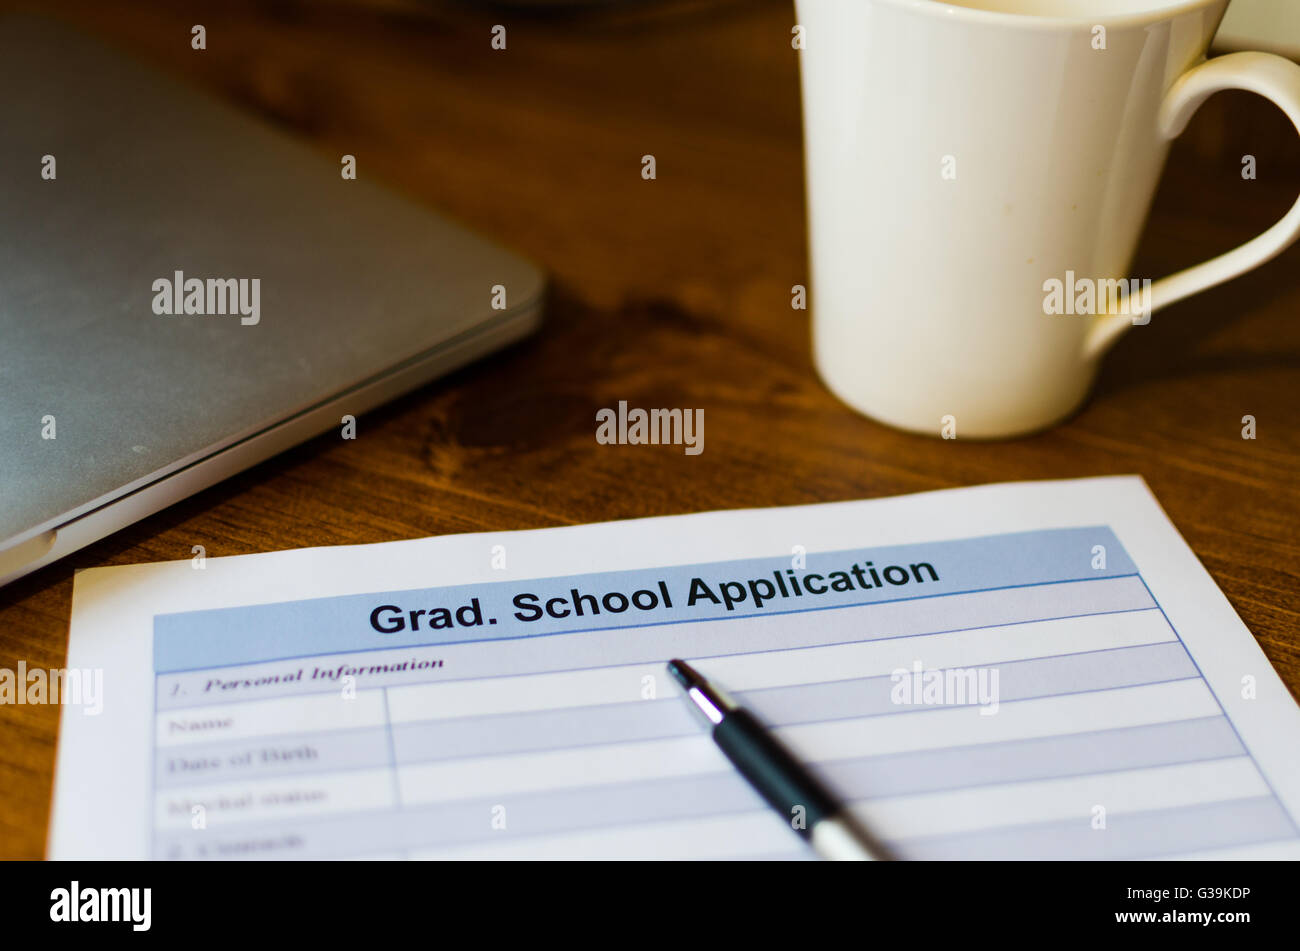 Graduate school admission application - Stock Image